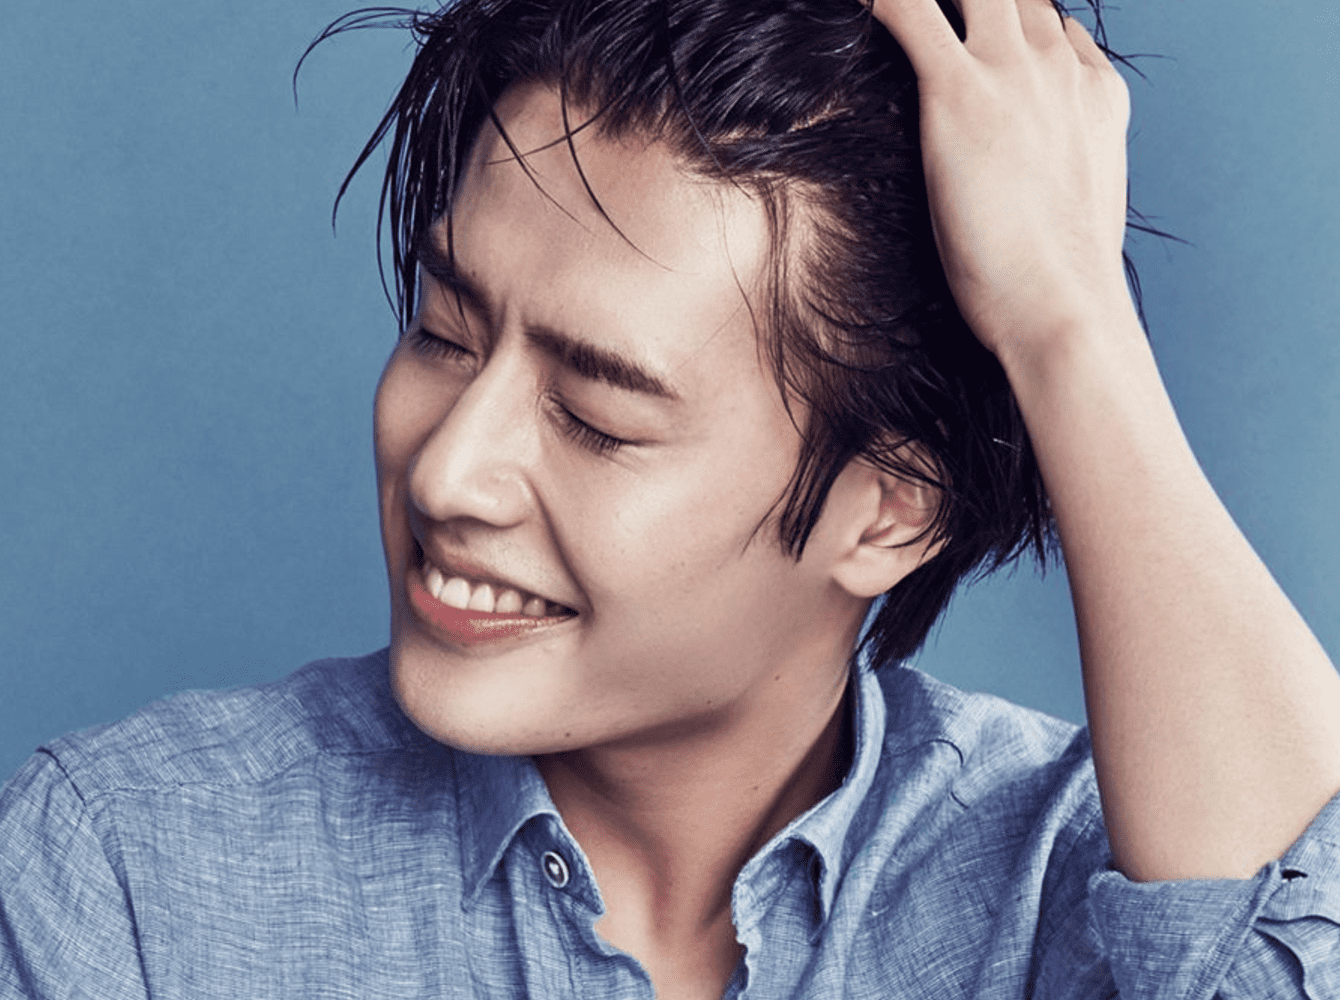 10 Reasons Why Actor Kang Ha Neul Is Irreplaceable